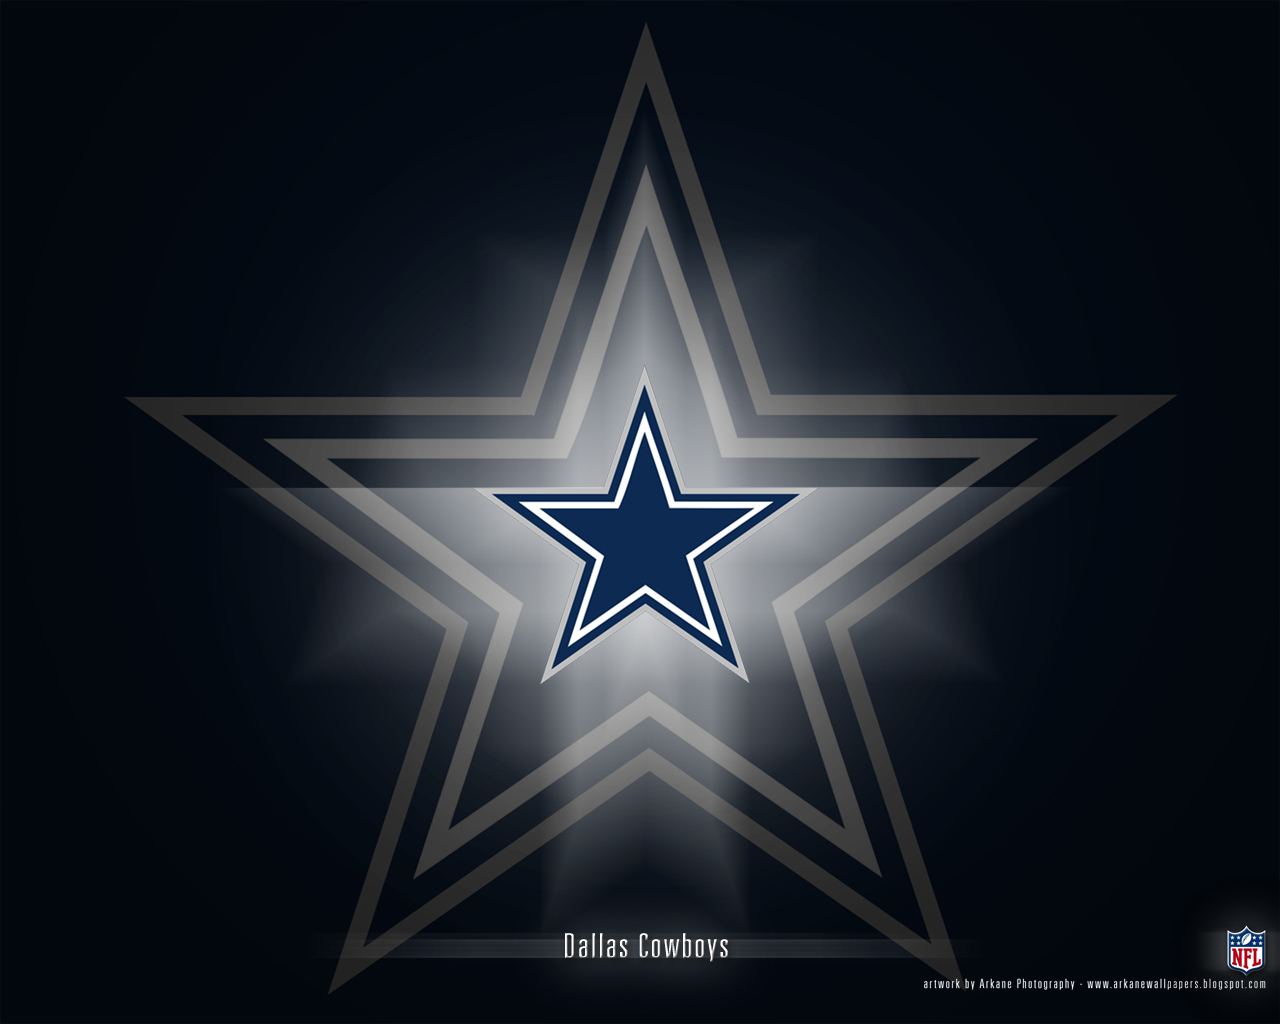 dallas cowboys images dallas cowboys hd wallpaper and background